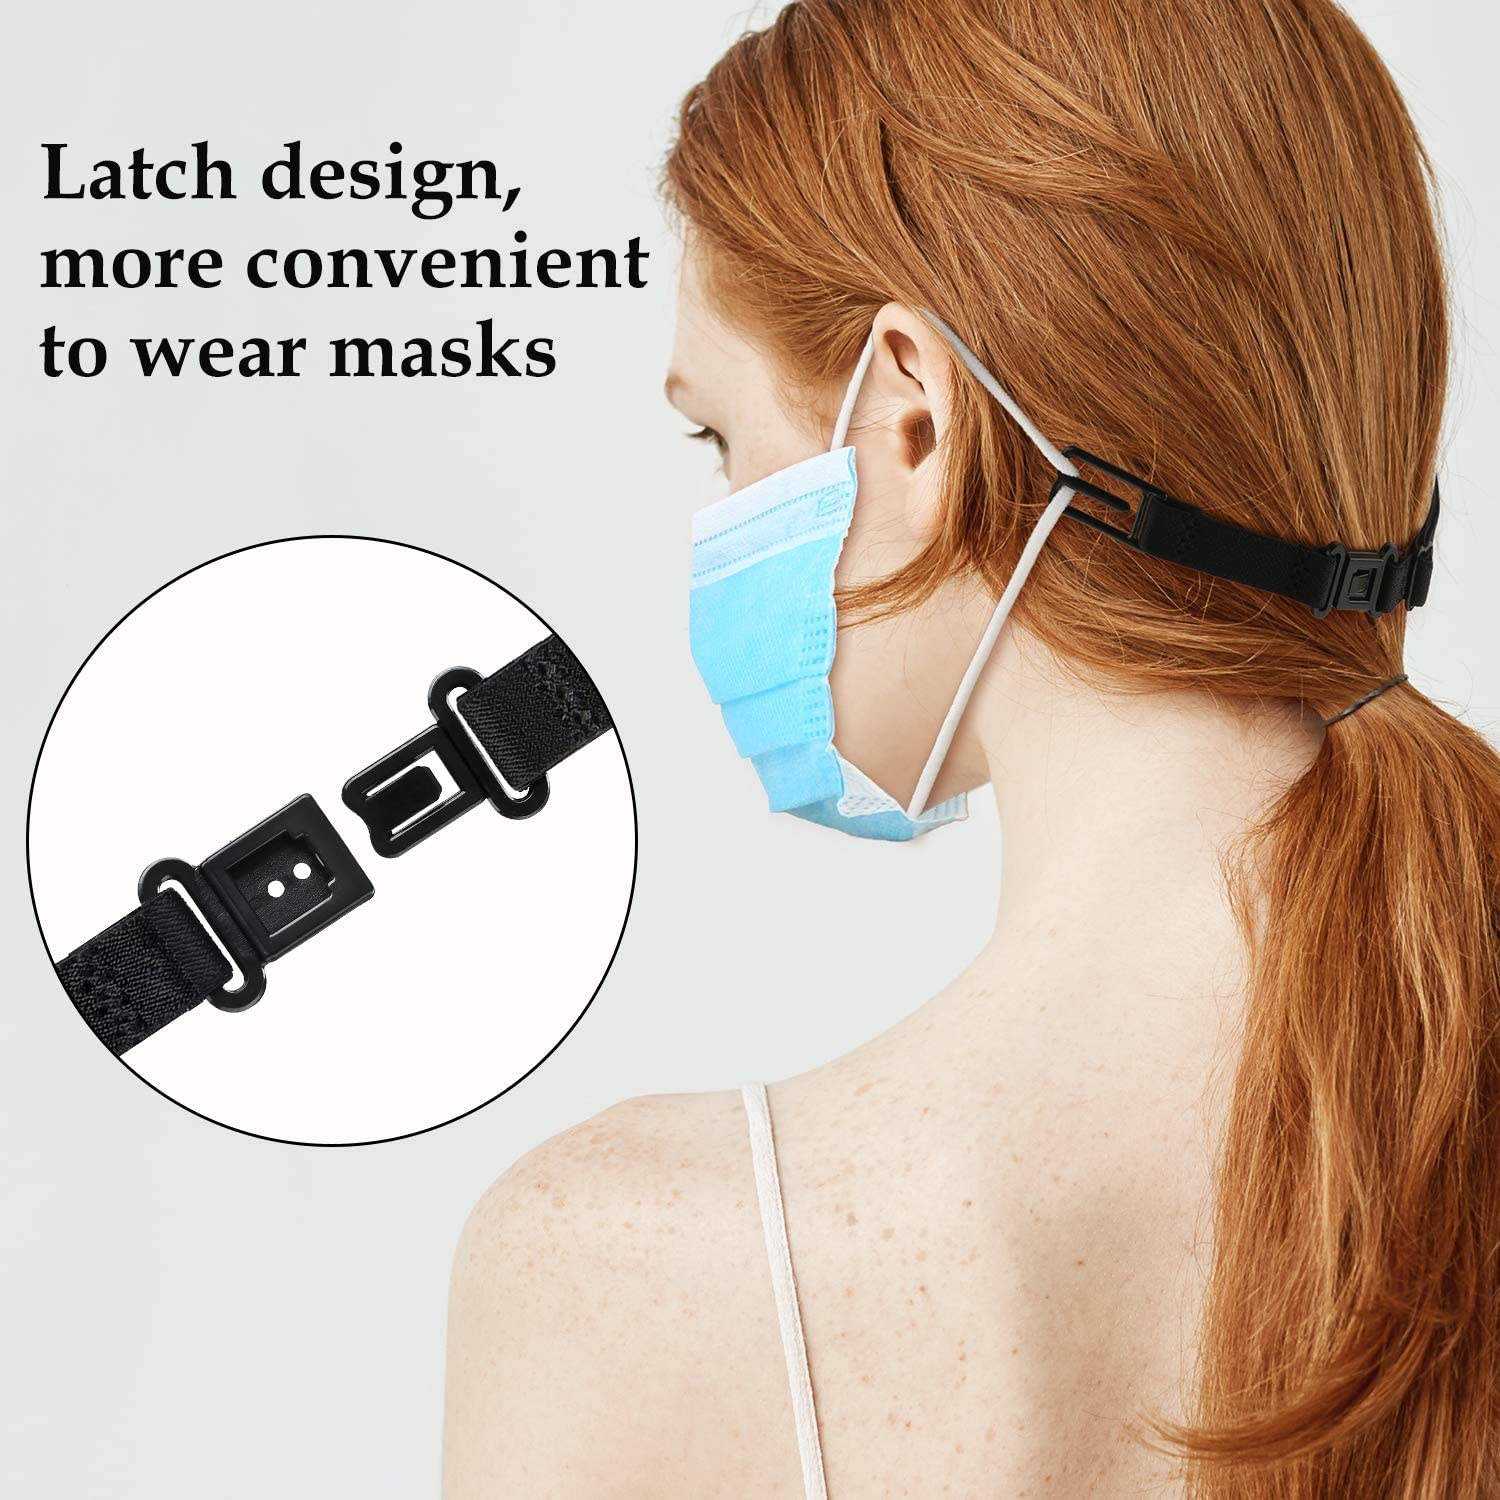 12, Black Child Ear Cord Extension Buckle Elastic Fabric Face Cover Lanyard Adjustable Anti-Slip Strap Face Covers Clips to Protect Ears Pressure Relief for Adult